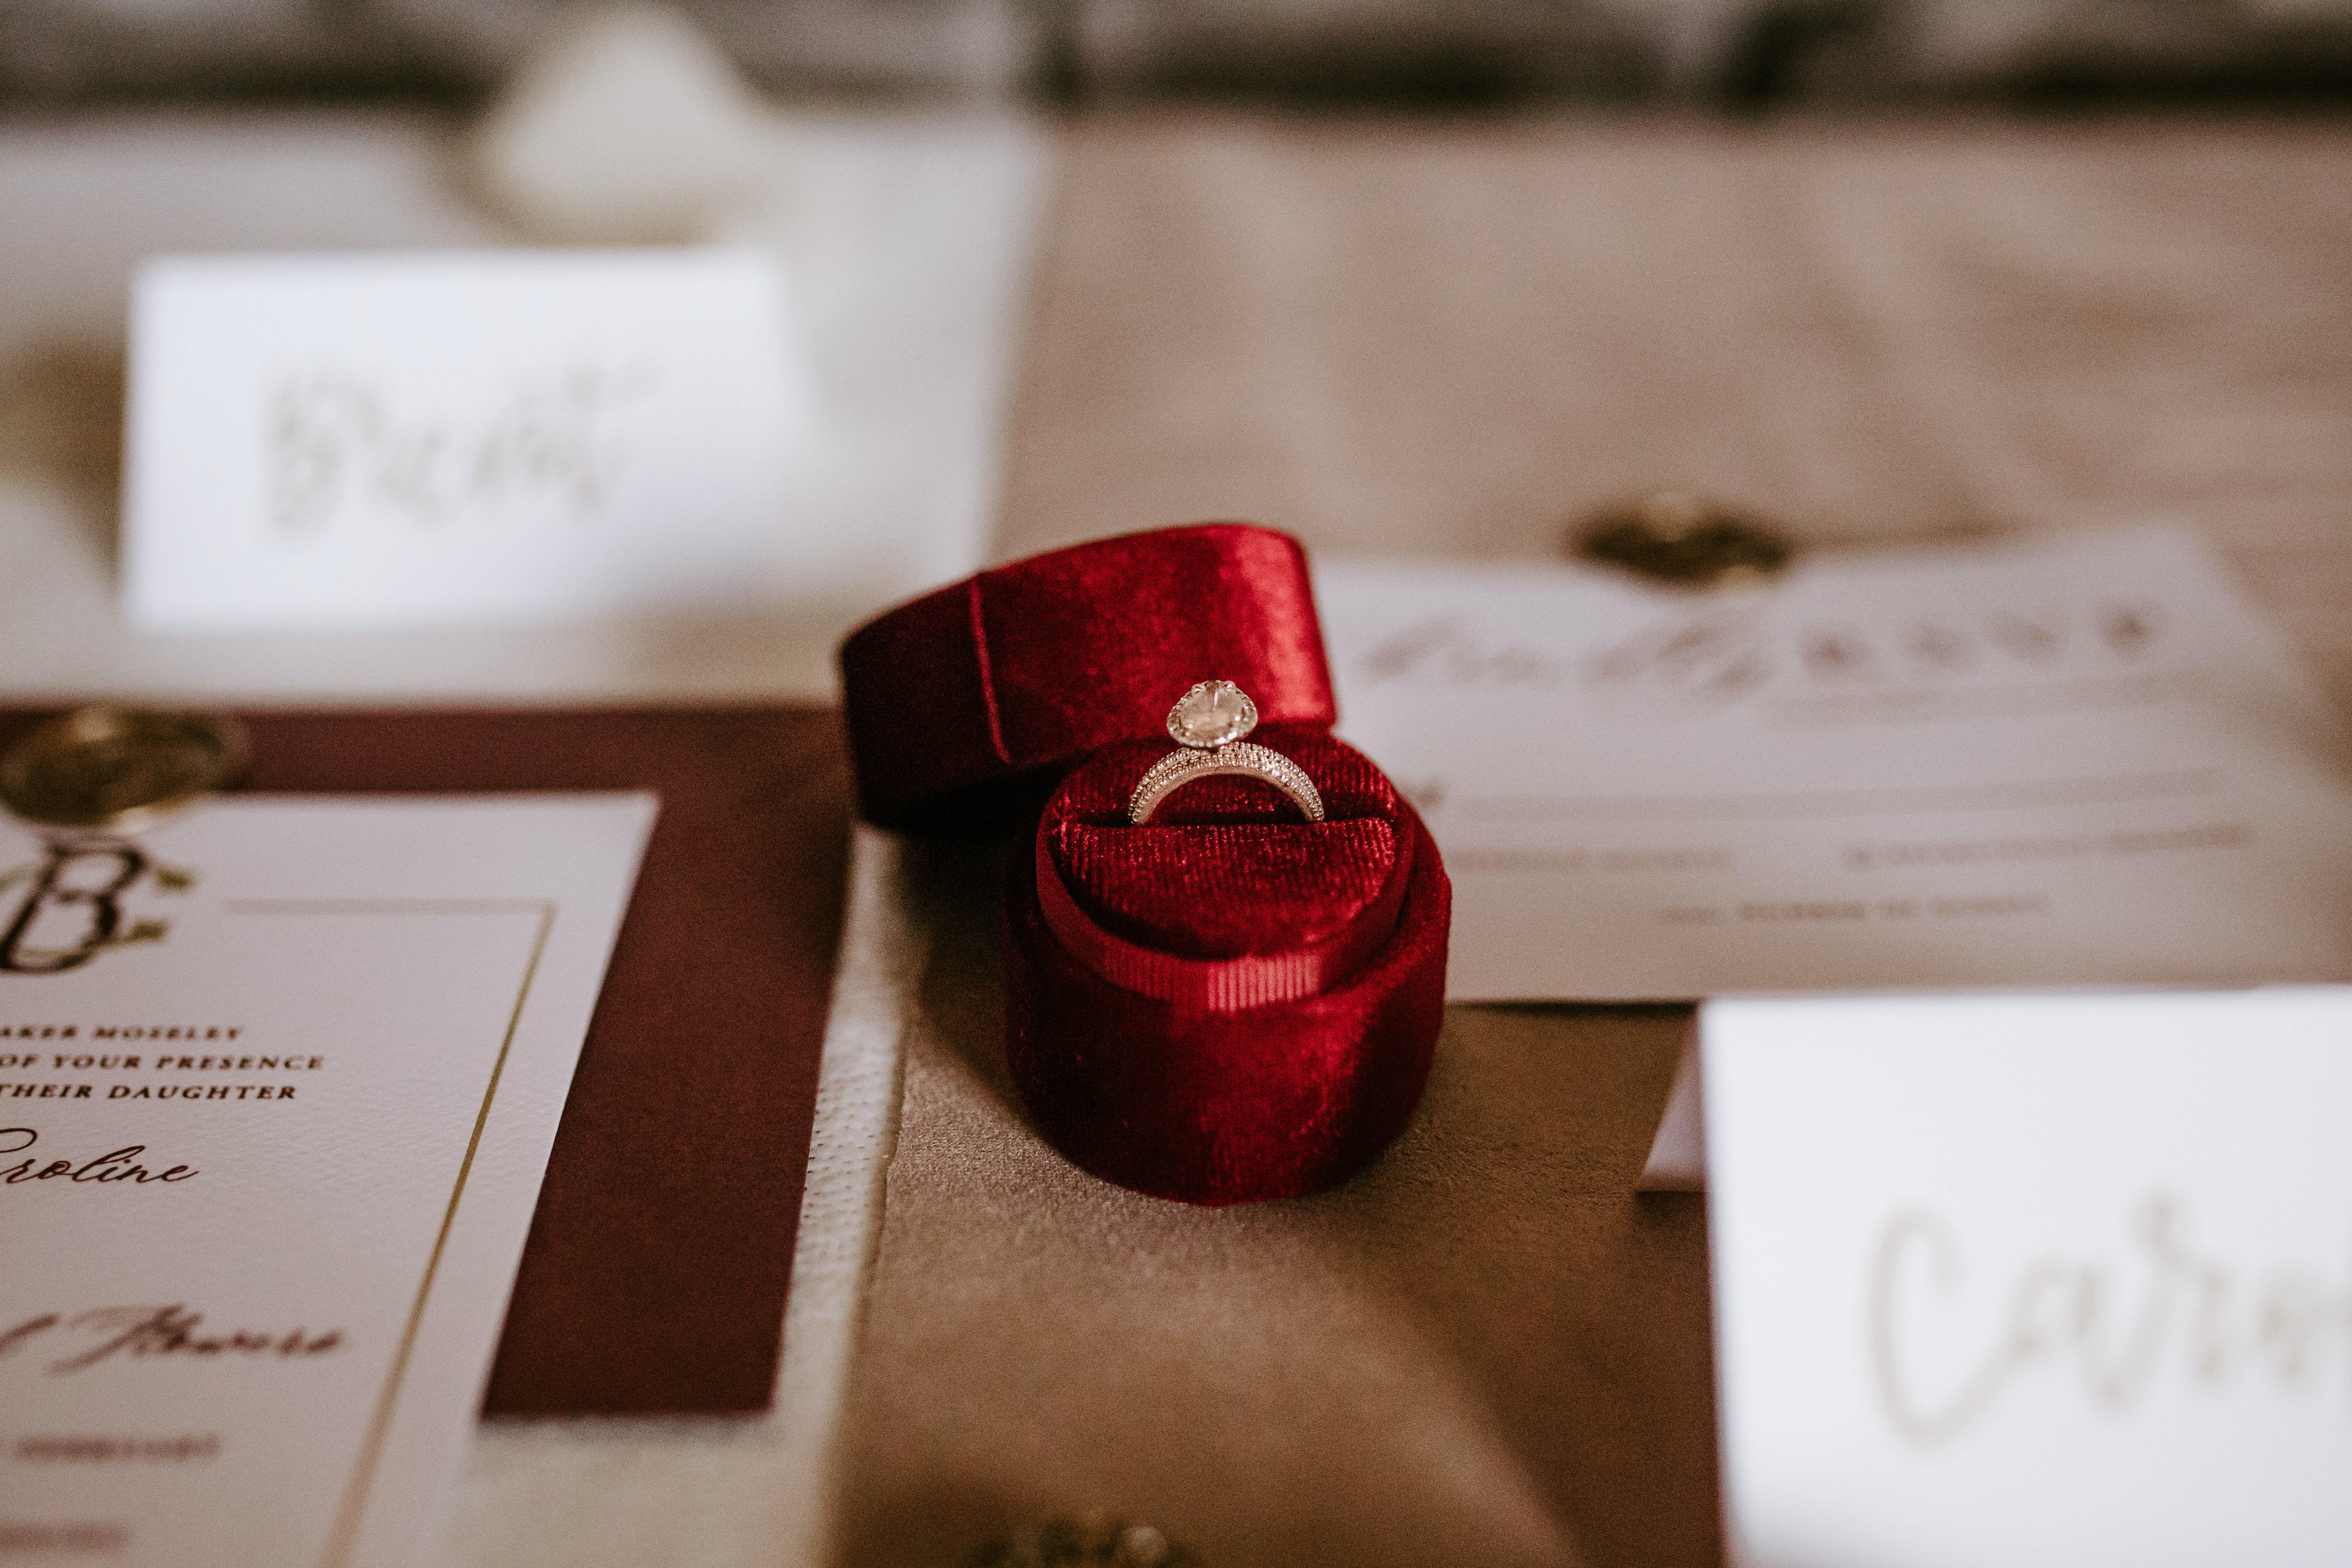 Chris decided to propose Mary | Photo: Pexels